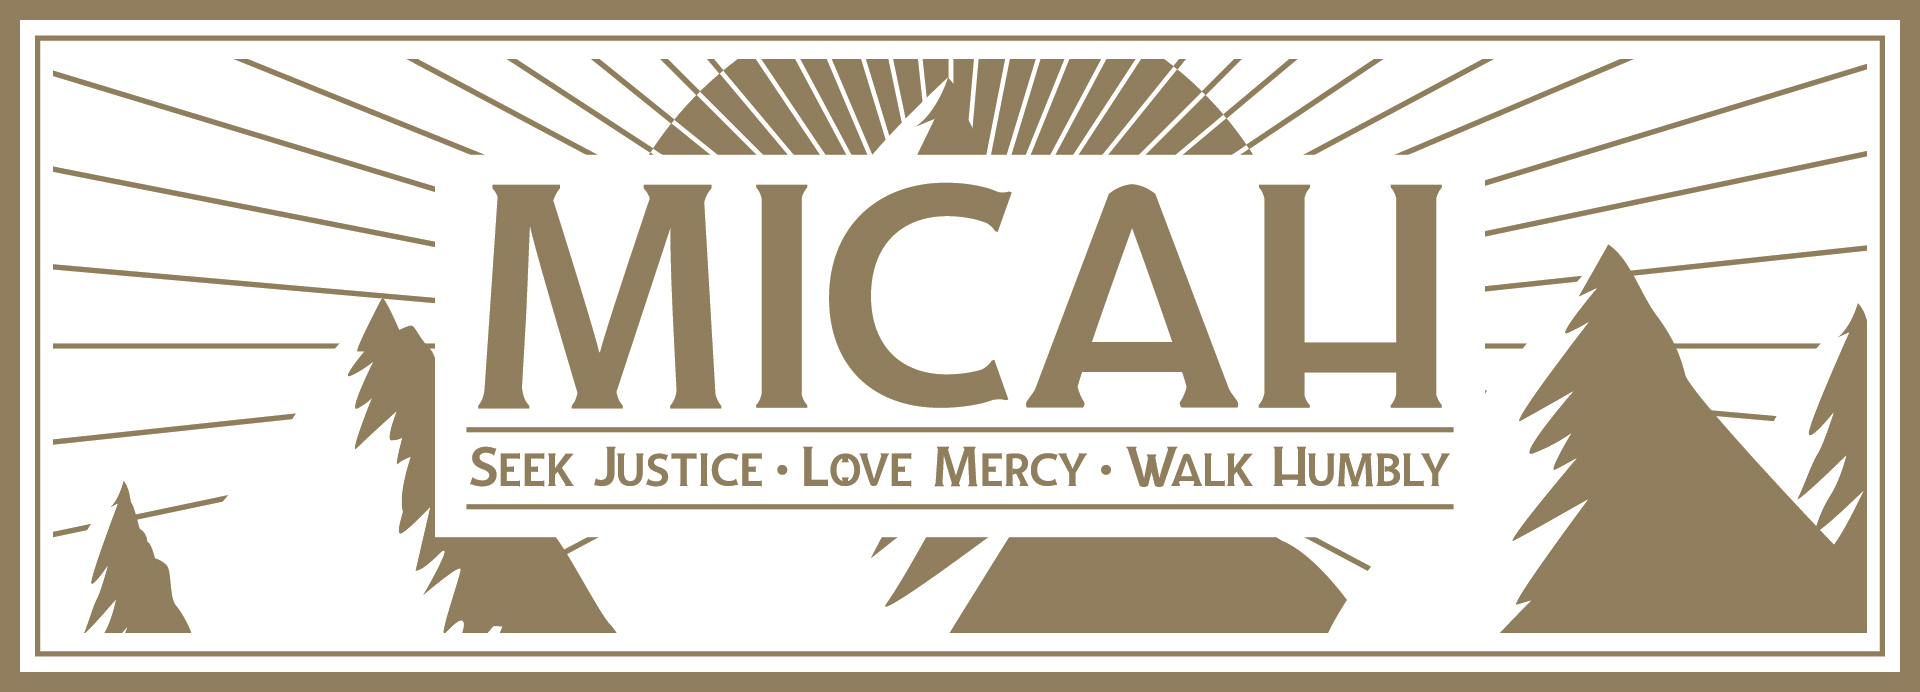 micah_website.jpg